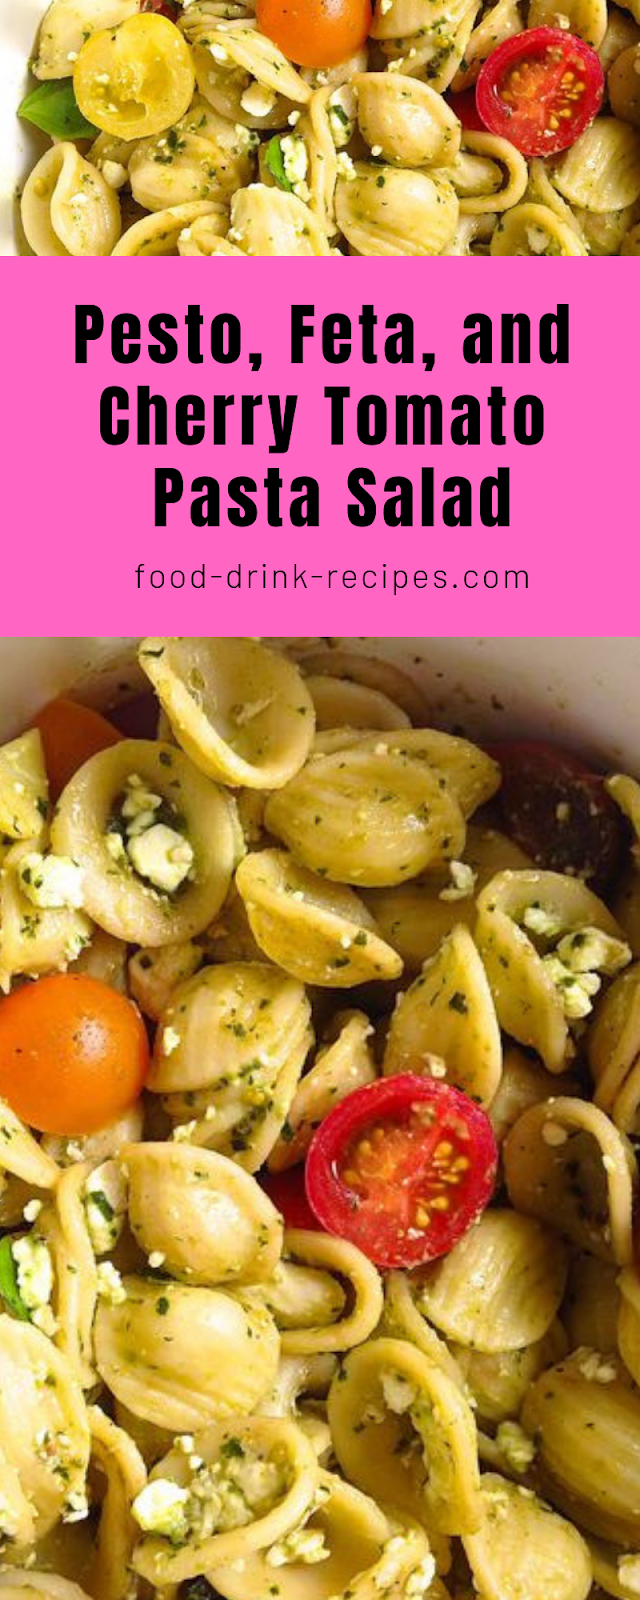 Pesto, Feta, and Cherry Tomato Pasta Salad - food-drink-recipes.com